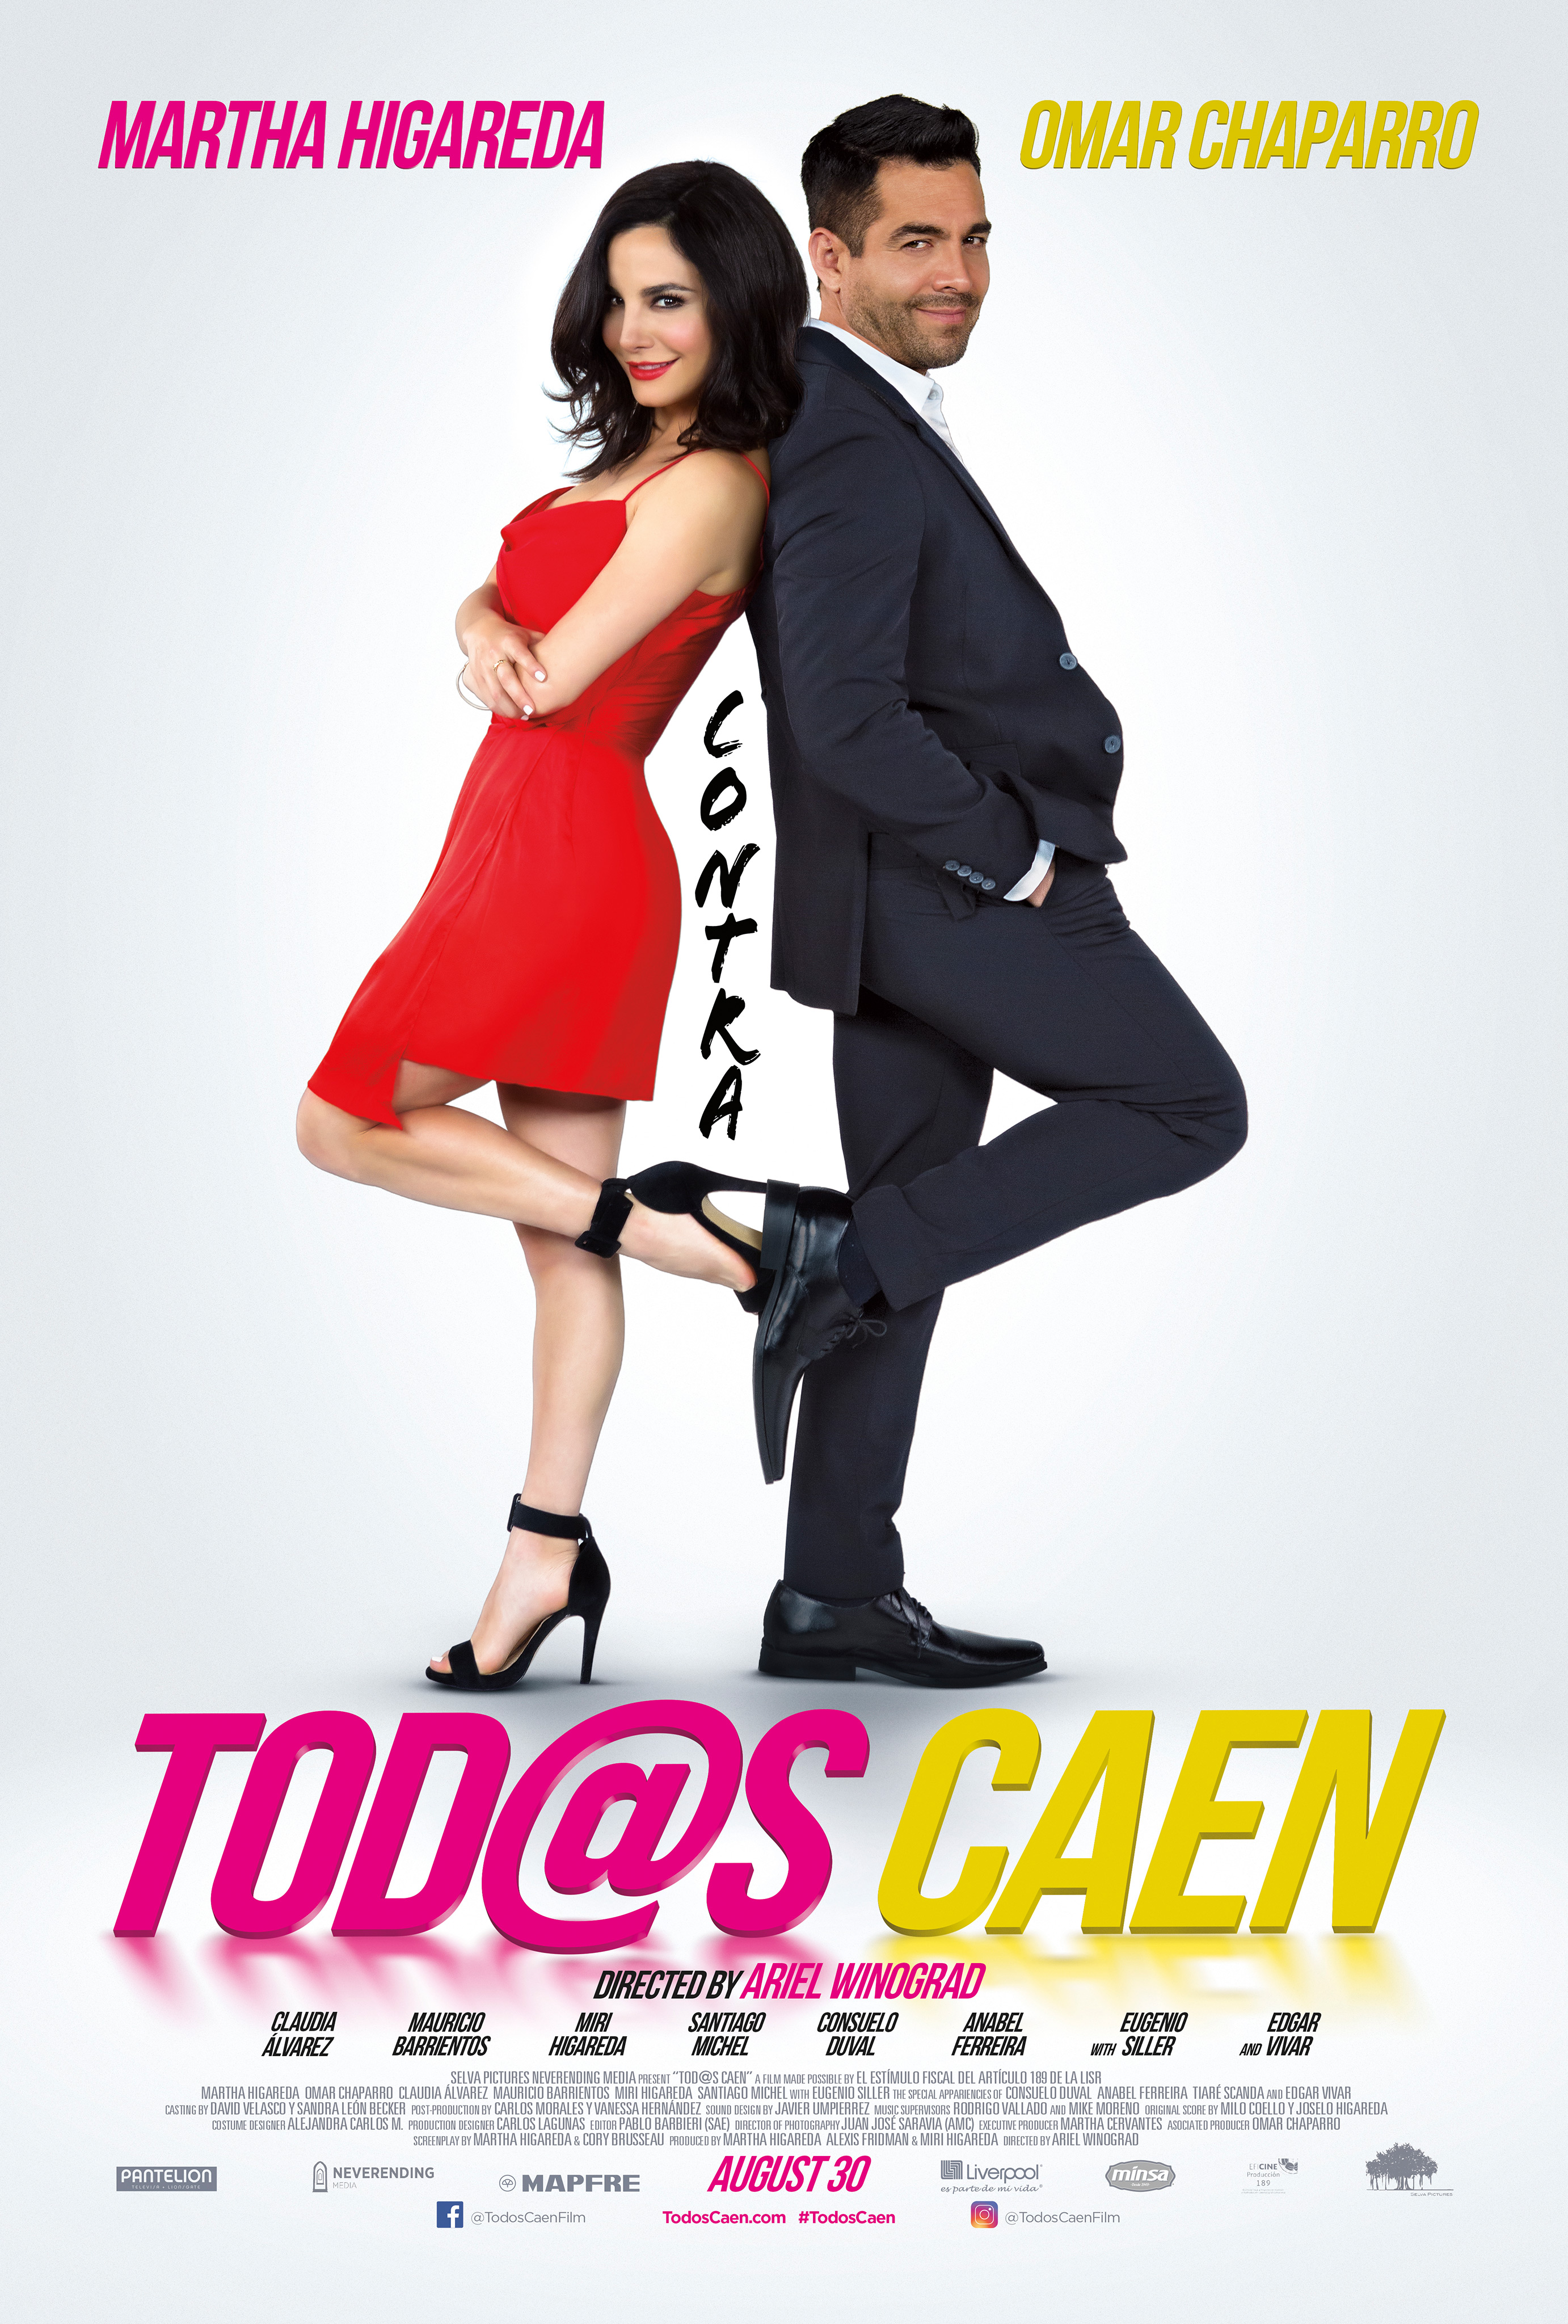 Amar Te Duele Full Movie tod@s caen now available on demand!